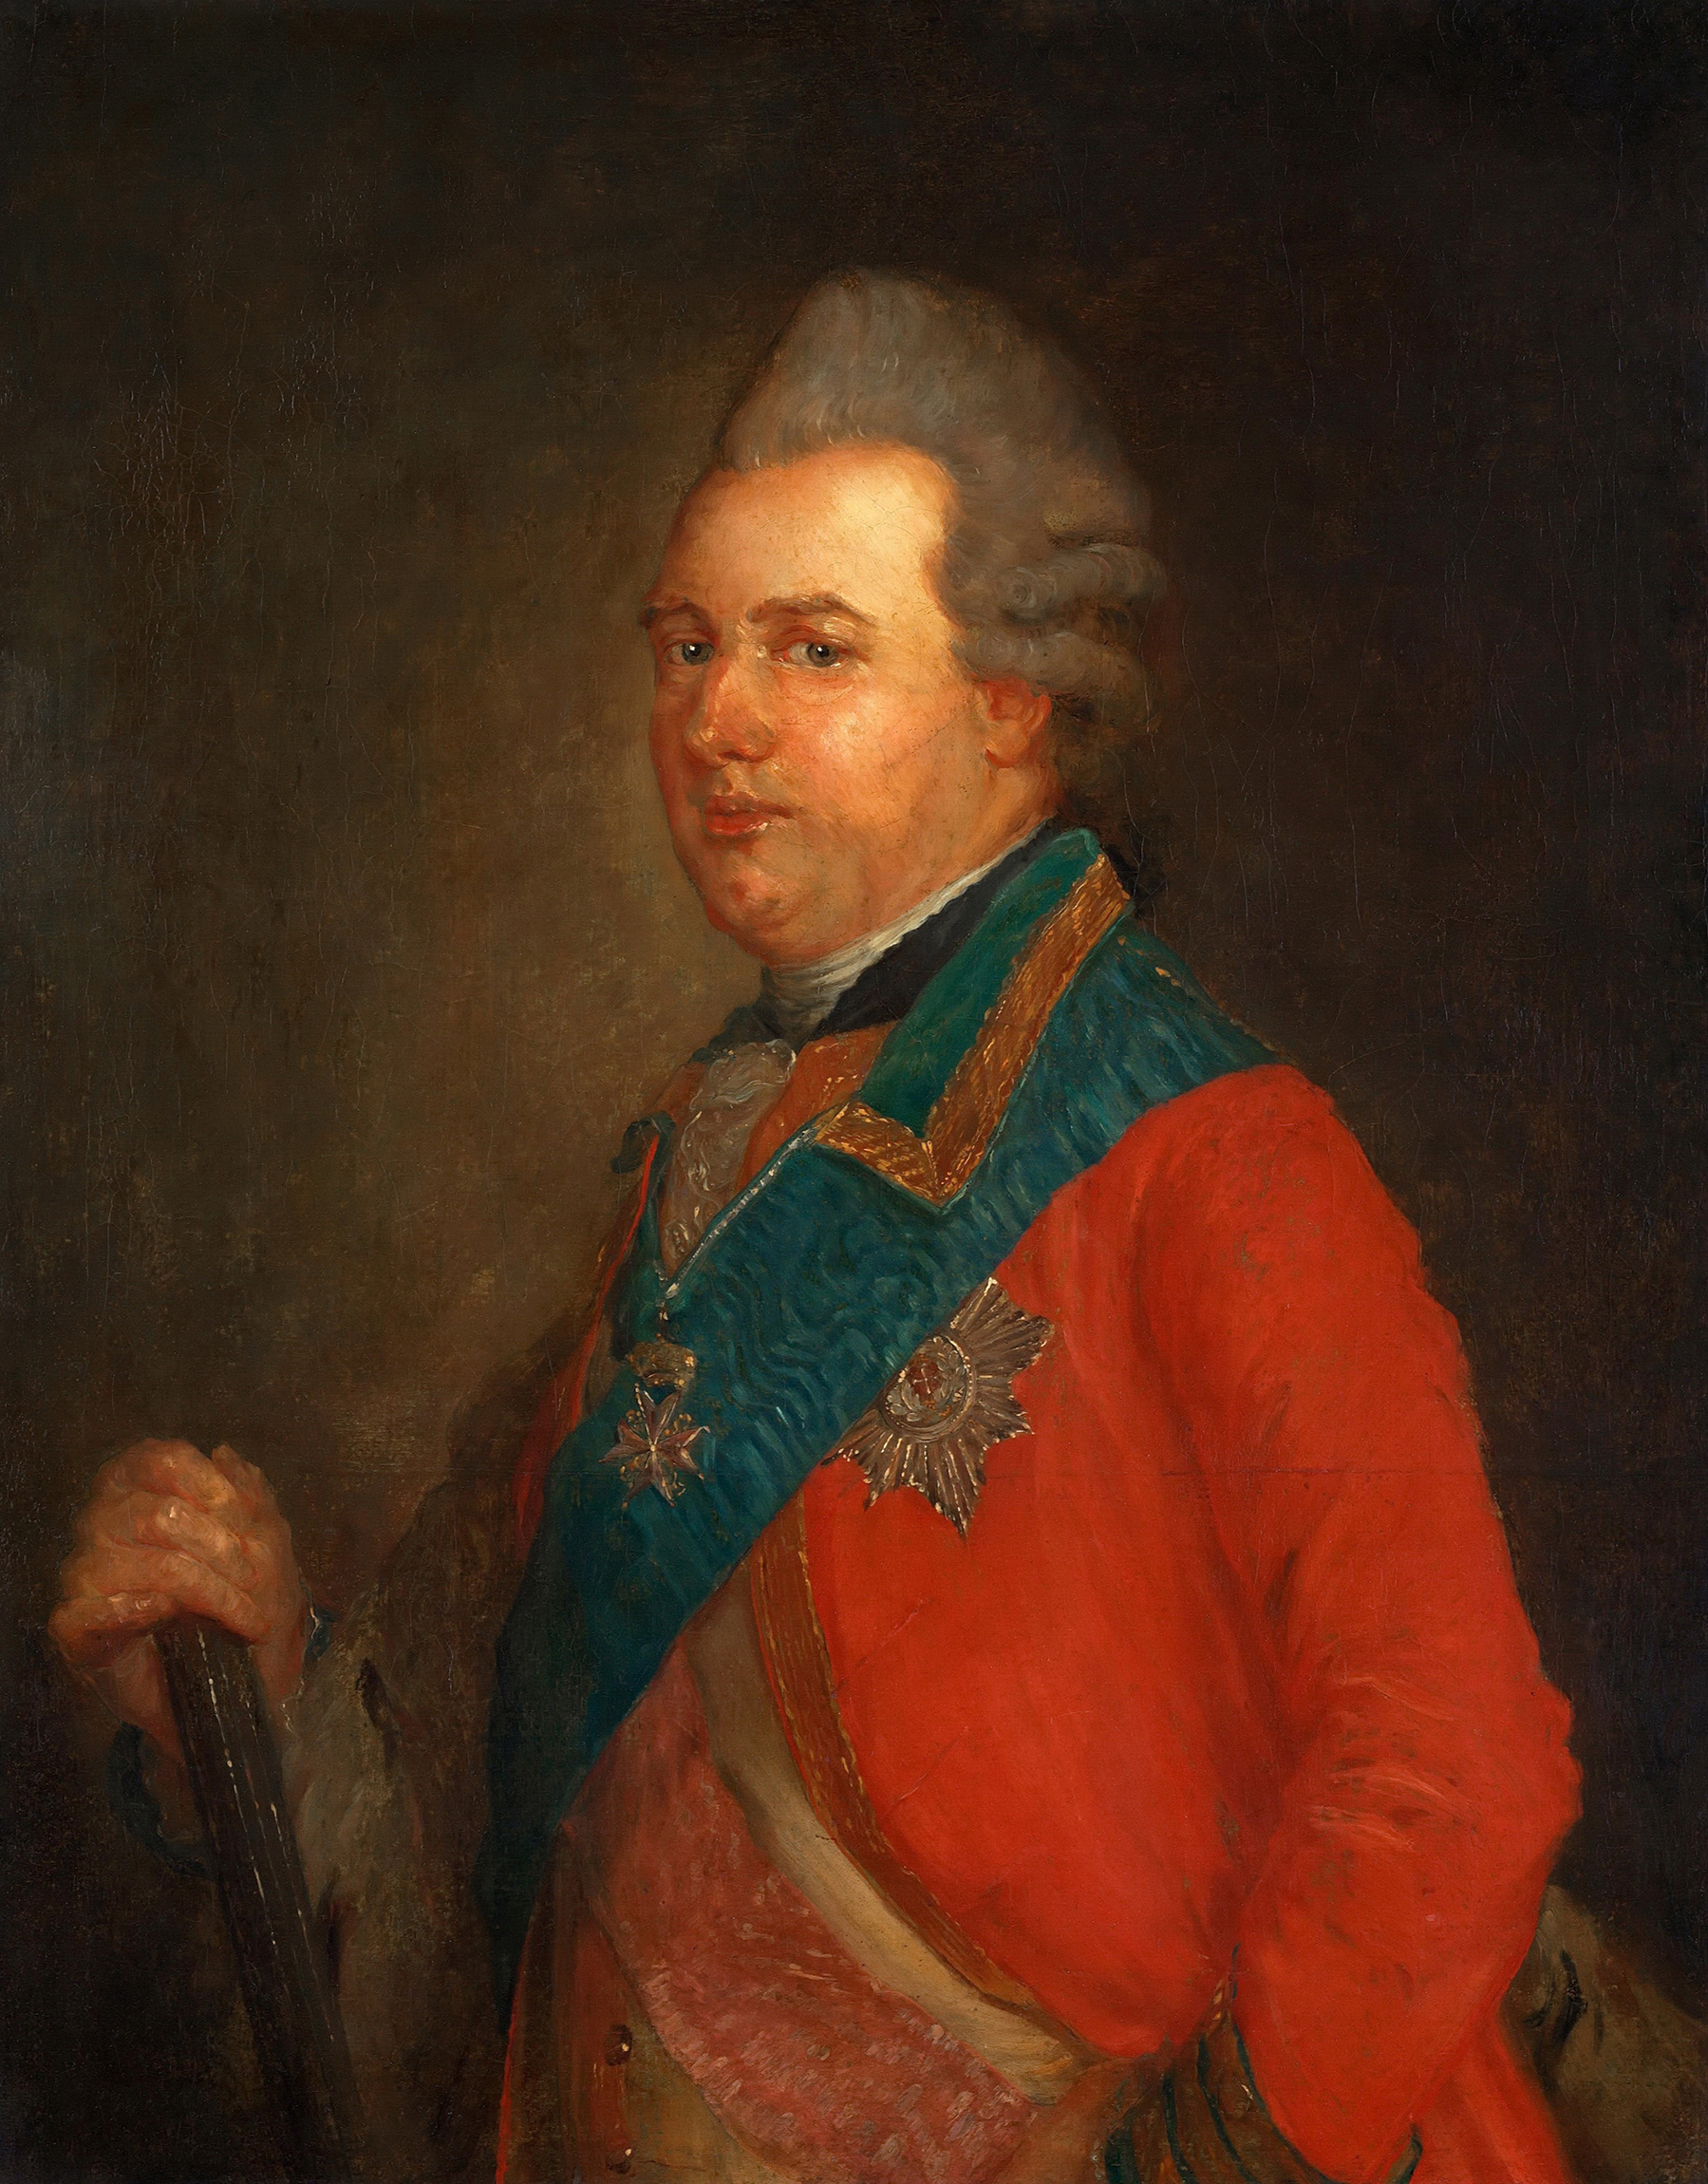 Portrait of Charles of Hessen-Kassel (1744-1836), Prince; Governor of the twin duchies of Schleswig-Holstein from 1769 to 1836; Сommander-in-chief of the Norwegian army (Kommanderende general i Norge) from 1772 to 1814, General-Field Marshal of the Danish Army, 1775 | Portraits of Kings